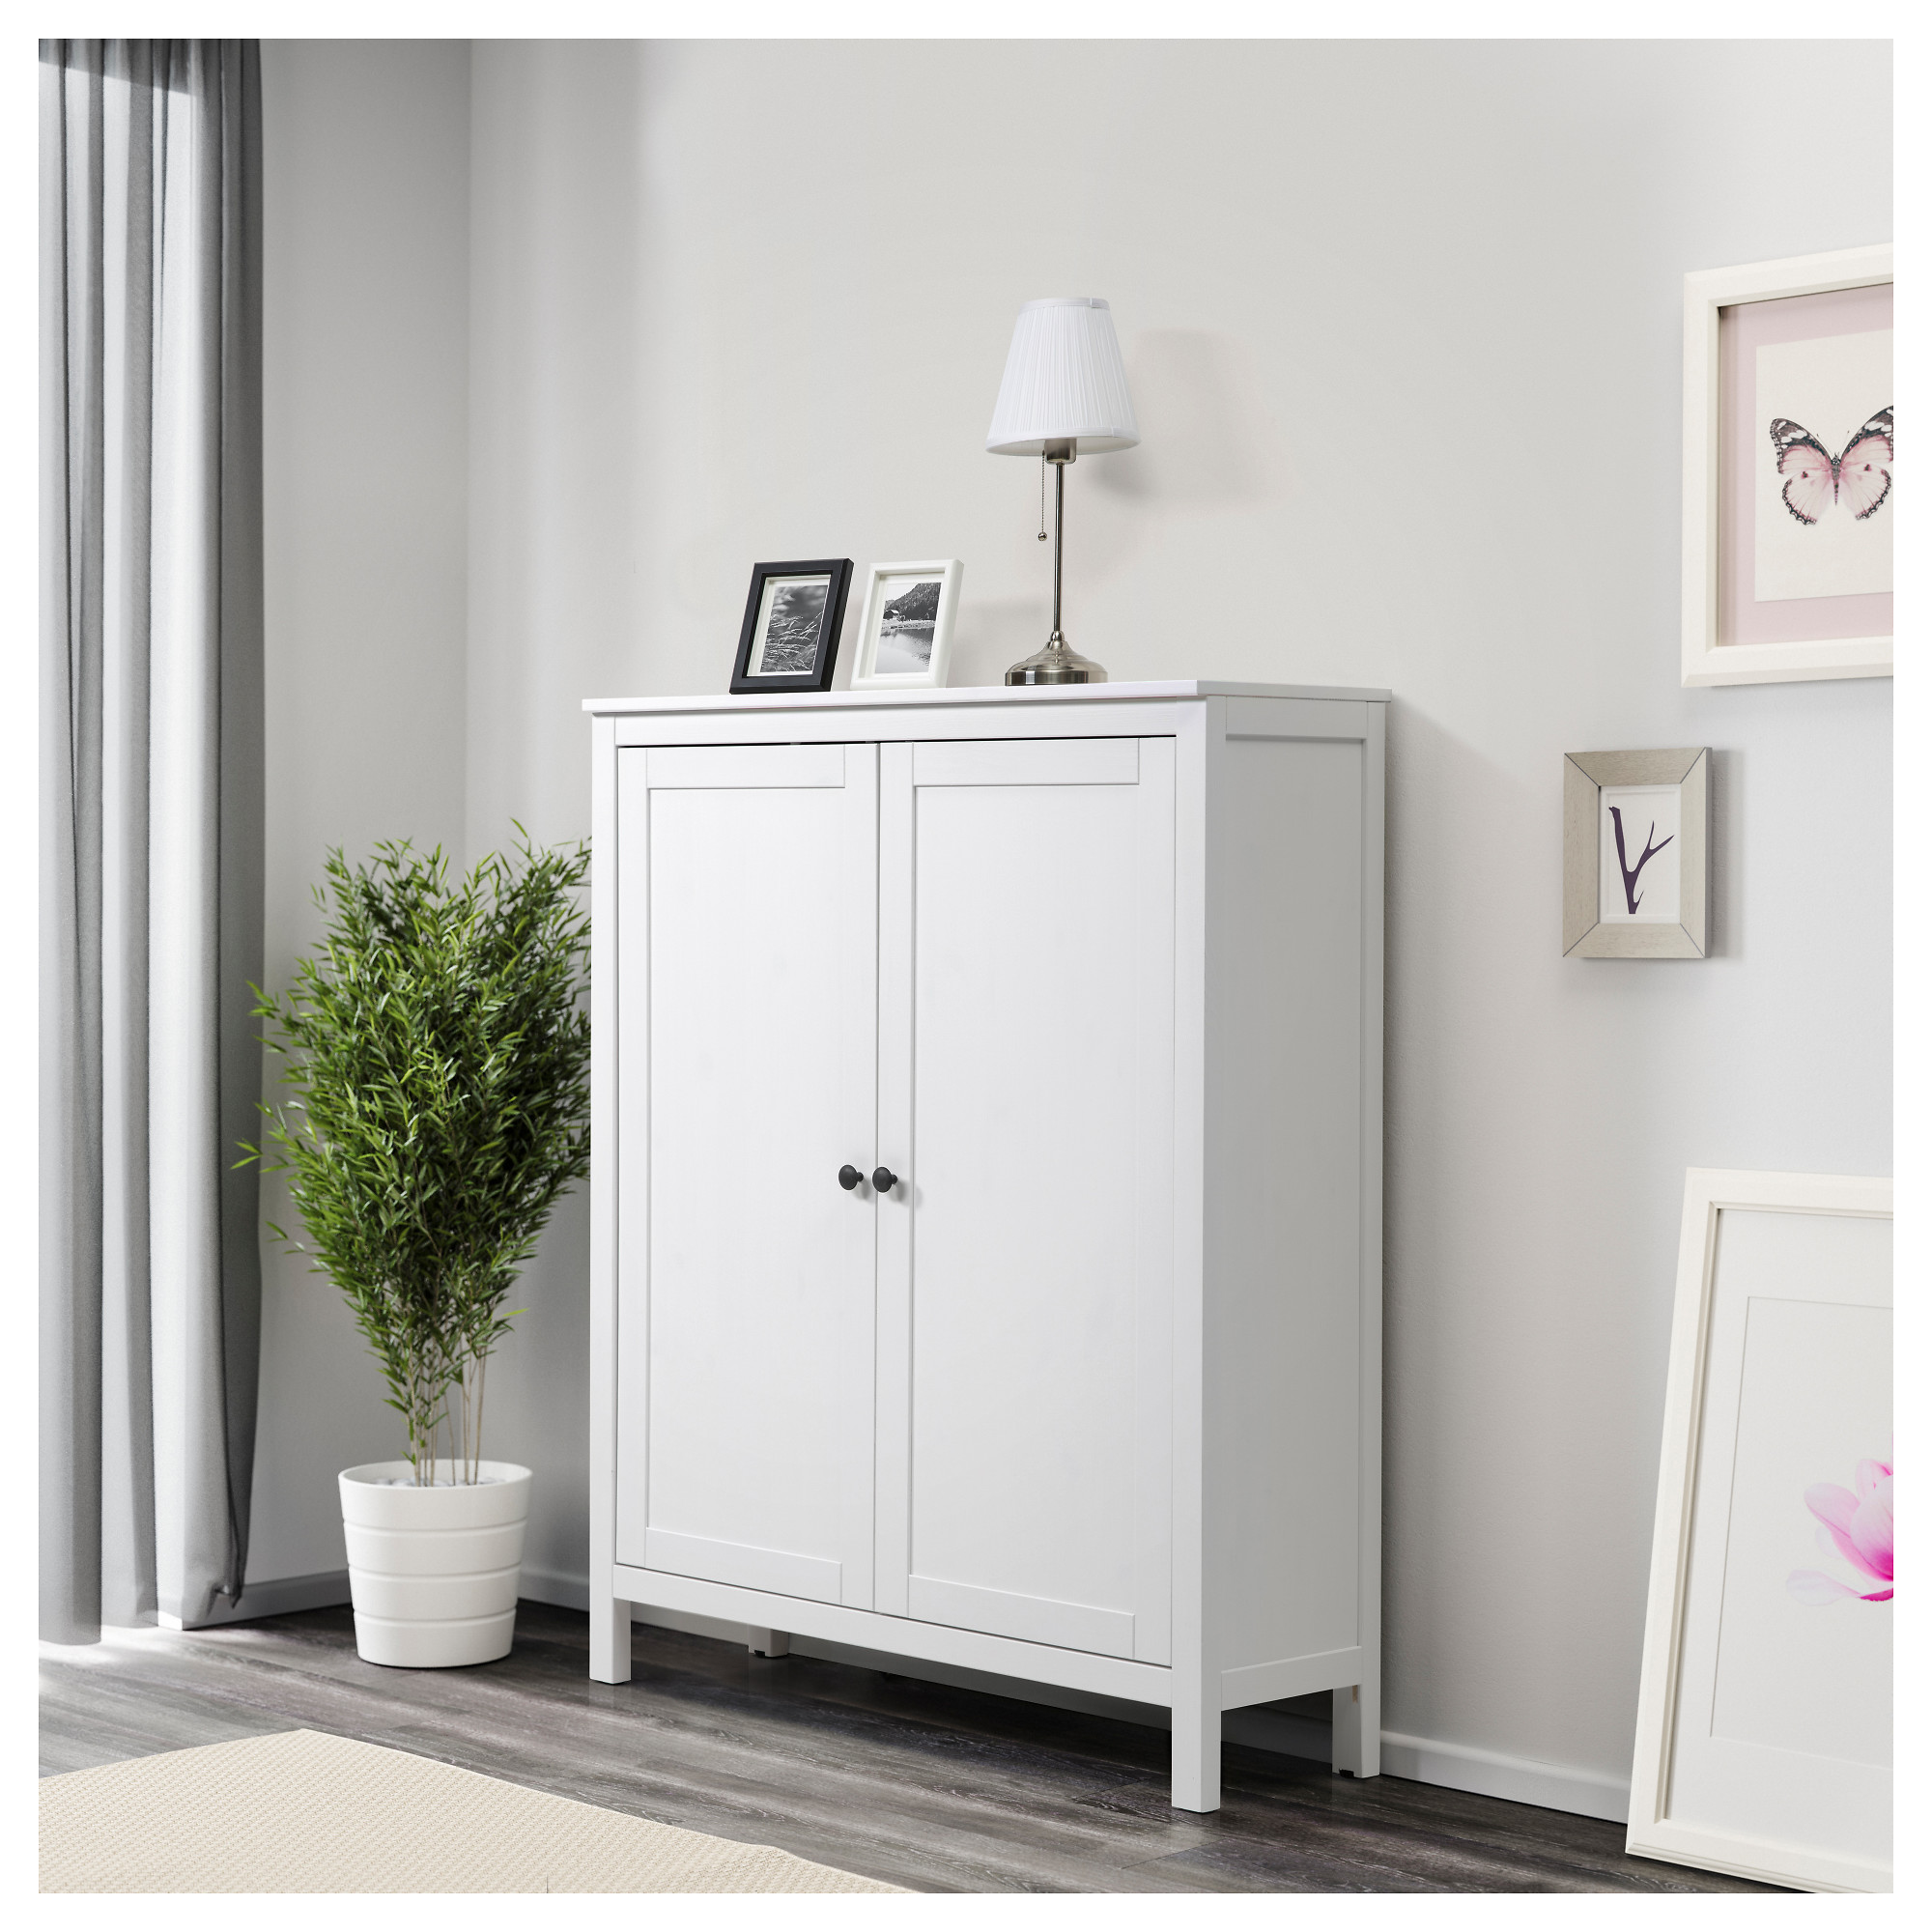 Charmant Check Out IKEA Range Of Storage Cabinets, From Storage Cupboards To  Accessories.